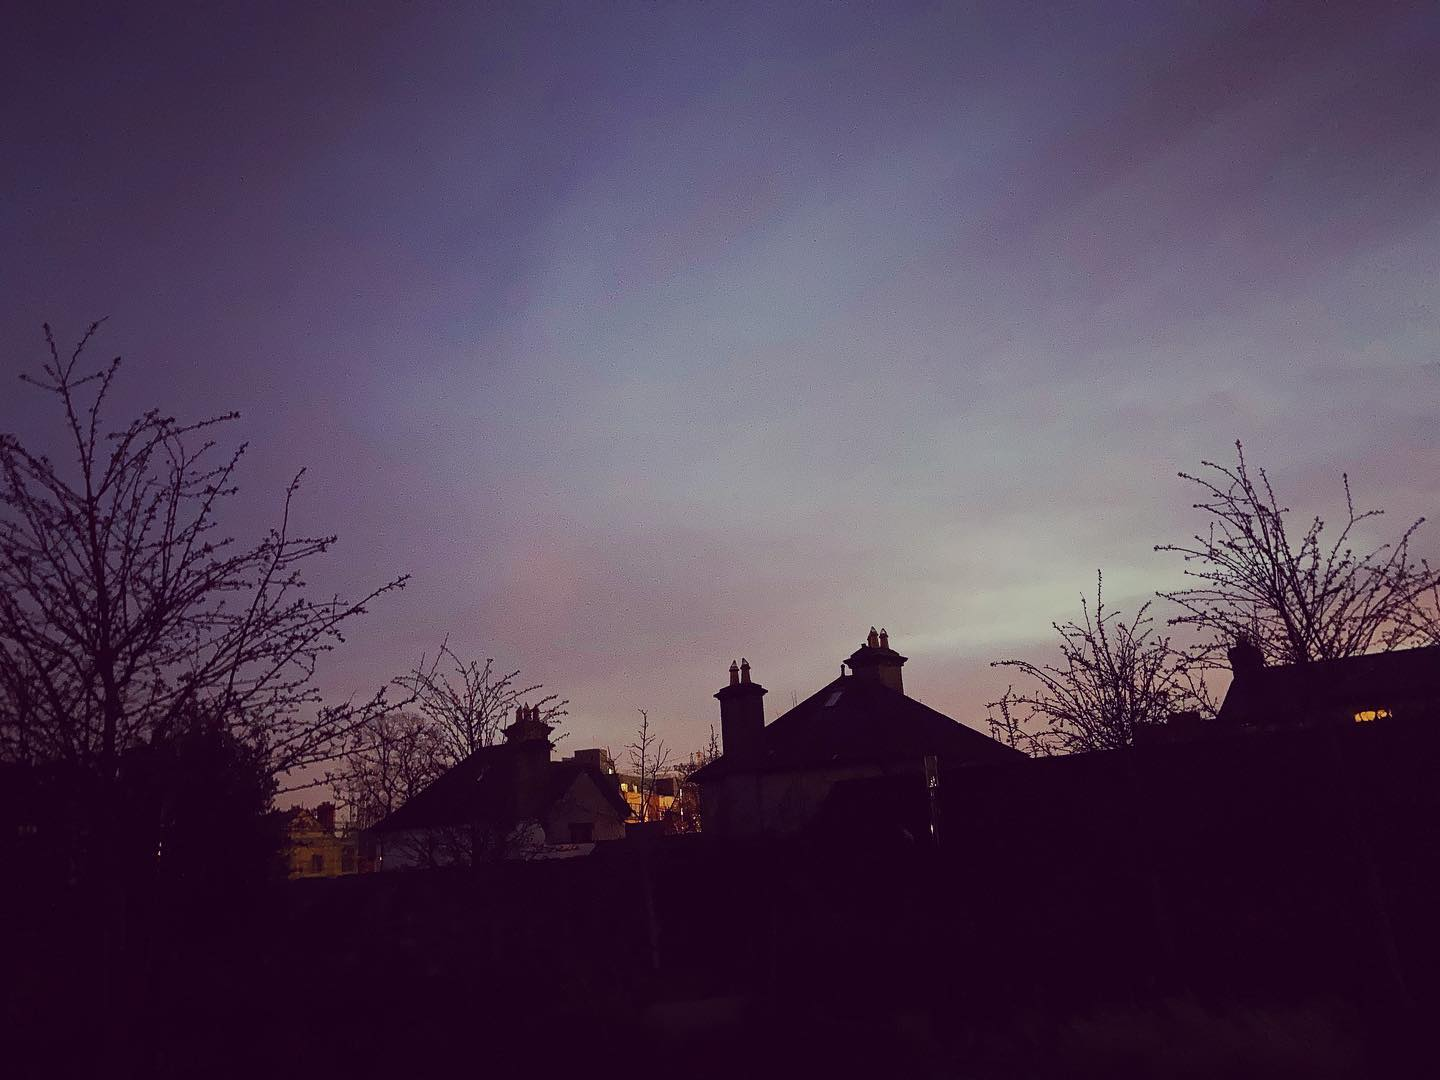 Good oul purpley sky